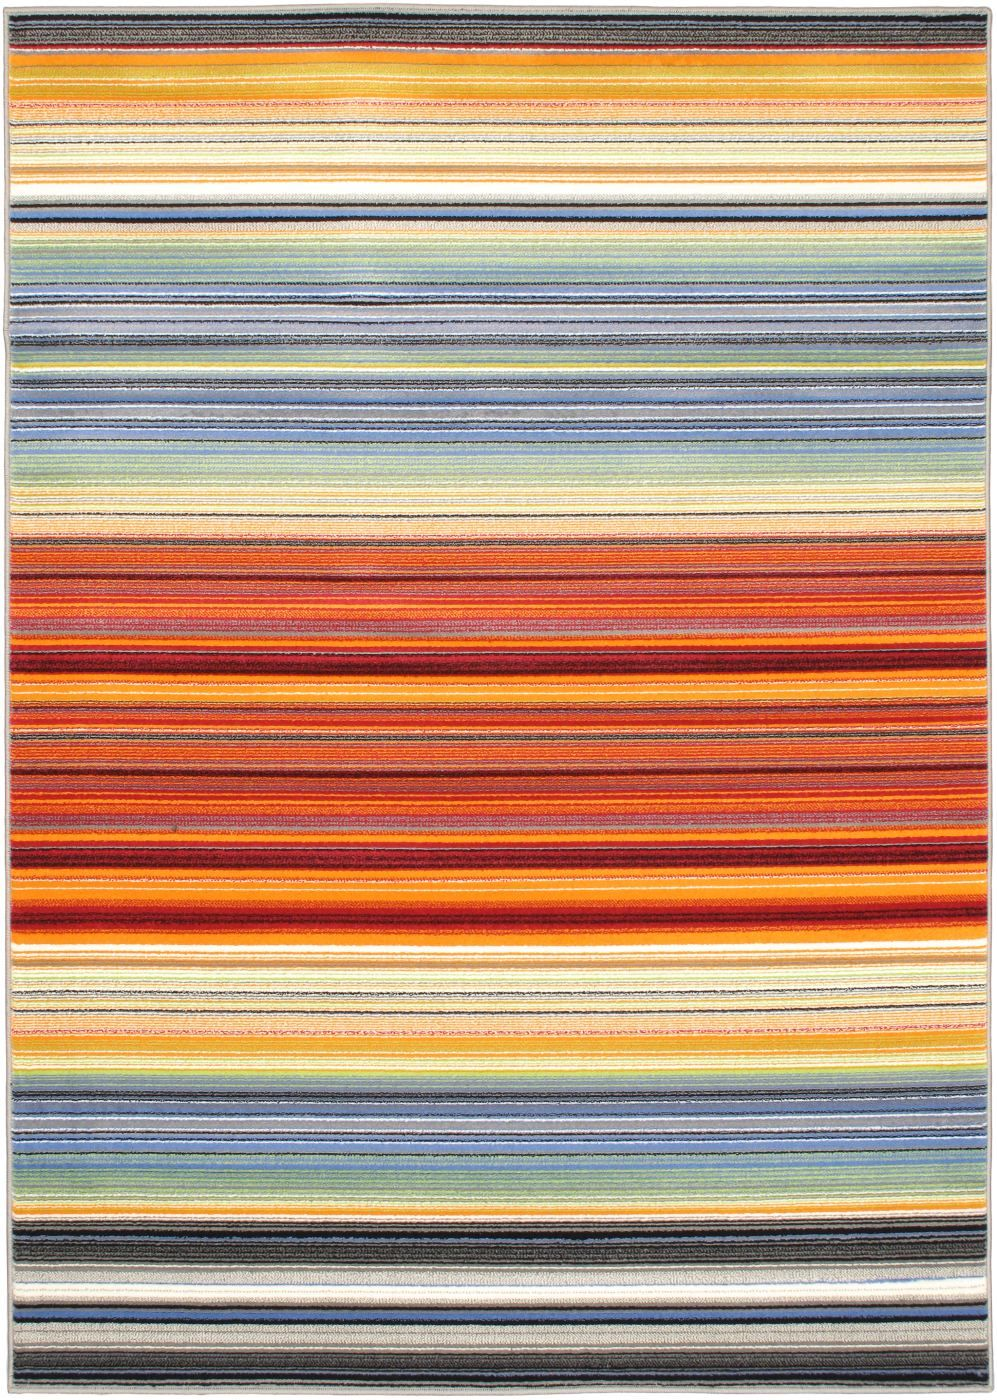 ecarpet gallery chroma solid/striped area rug collection